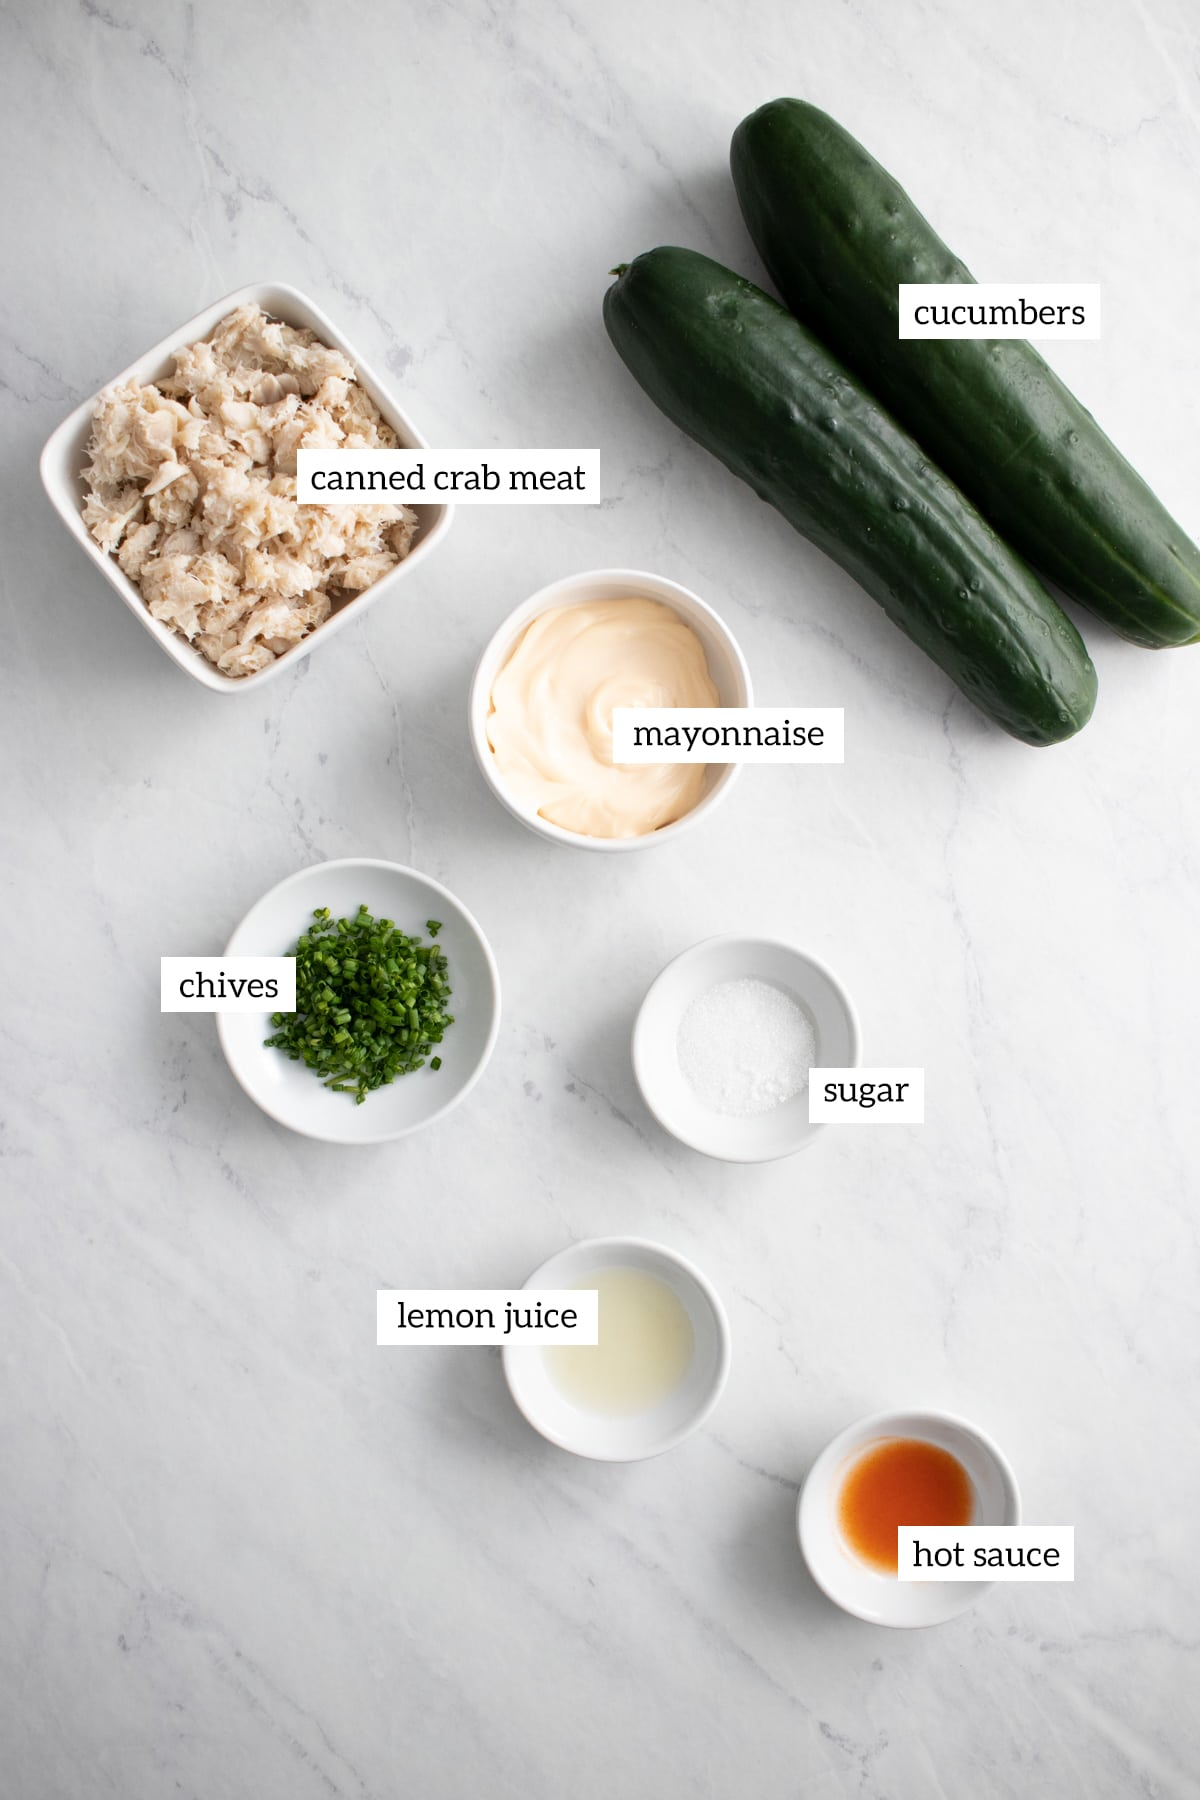 Ingredients prepped and measured out into individual dishes.